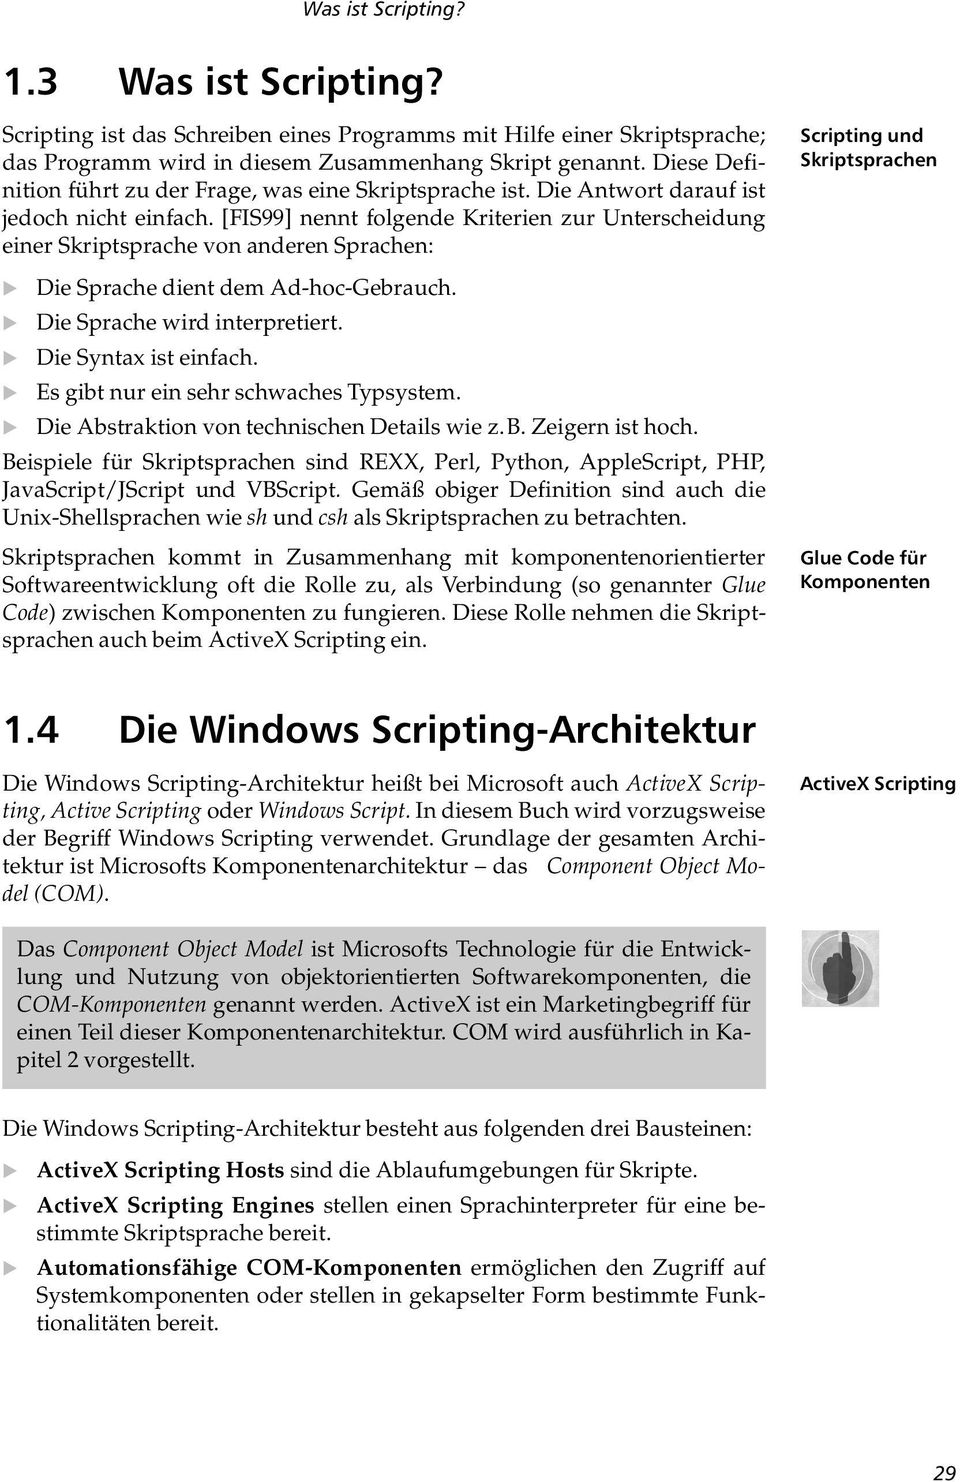 Windows- und BackOffice-Scripting - PDF